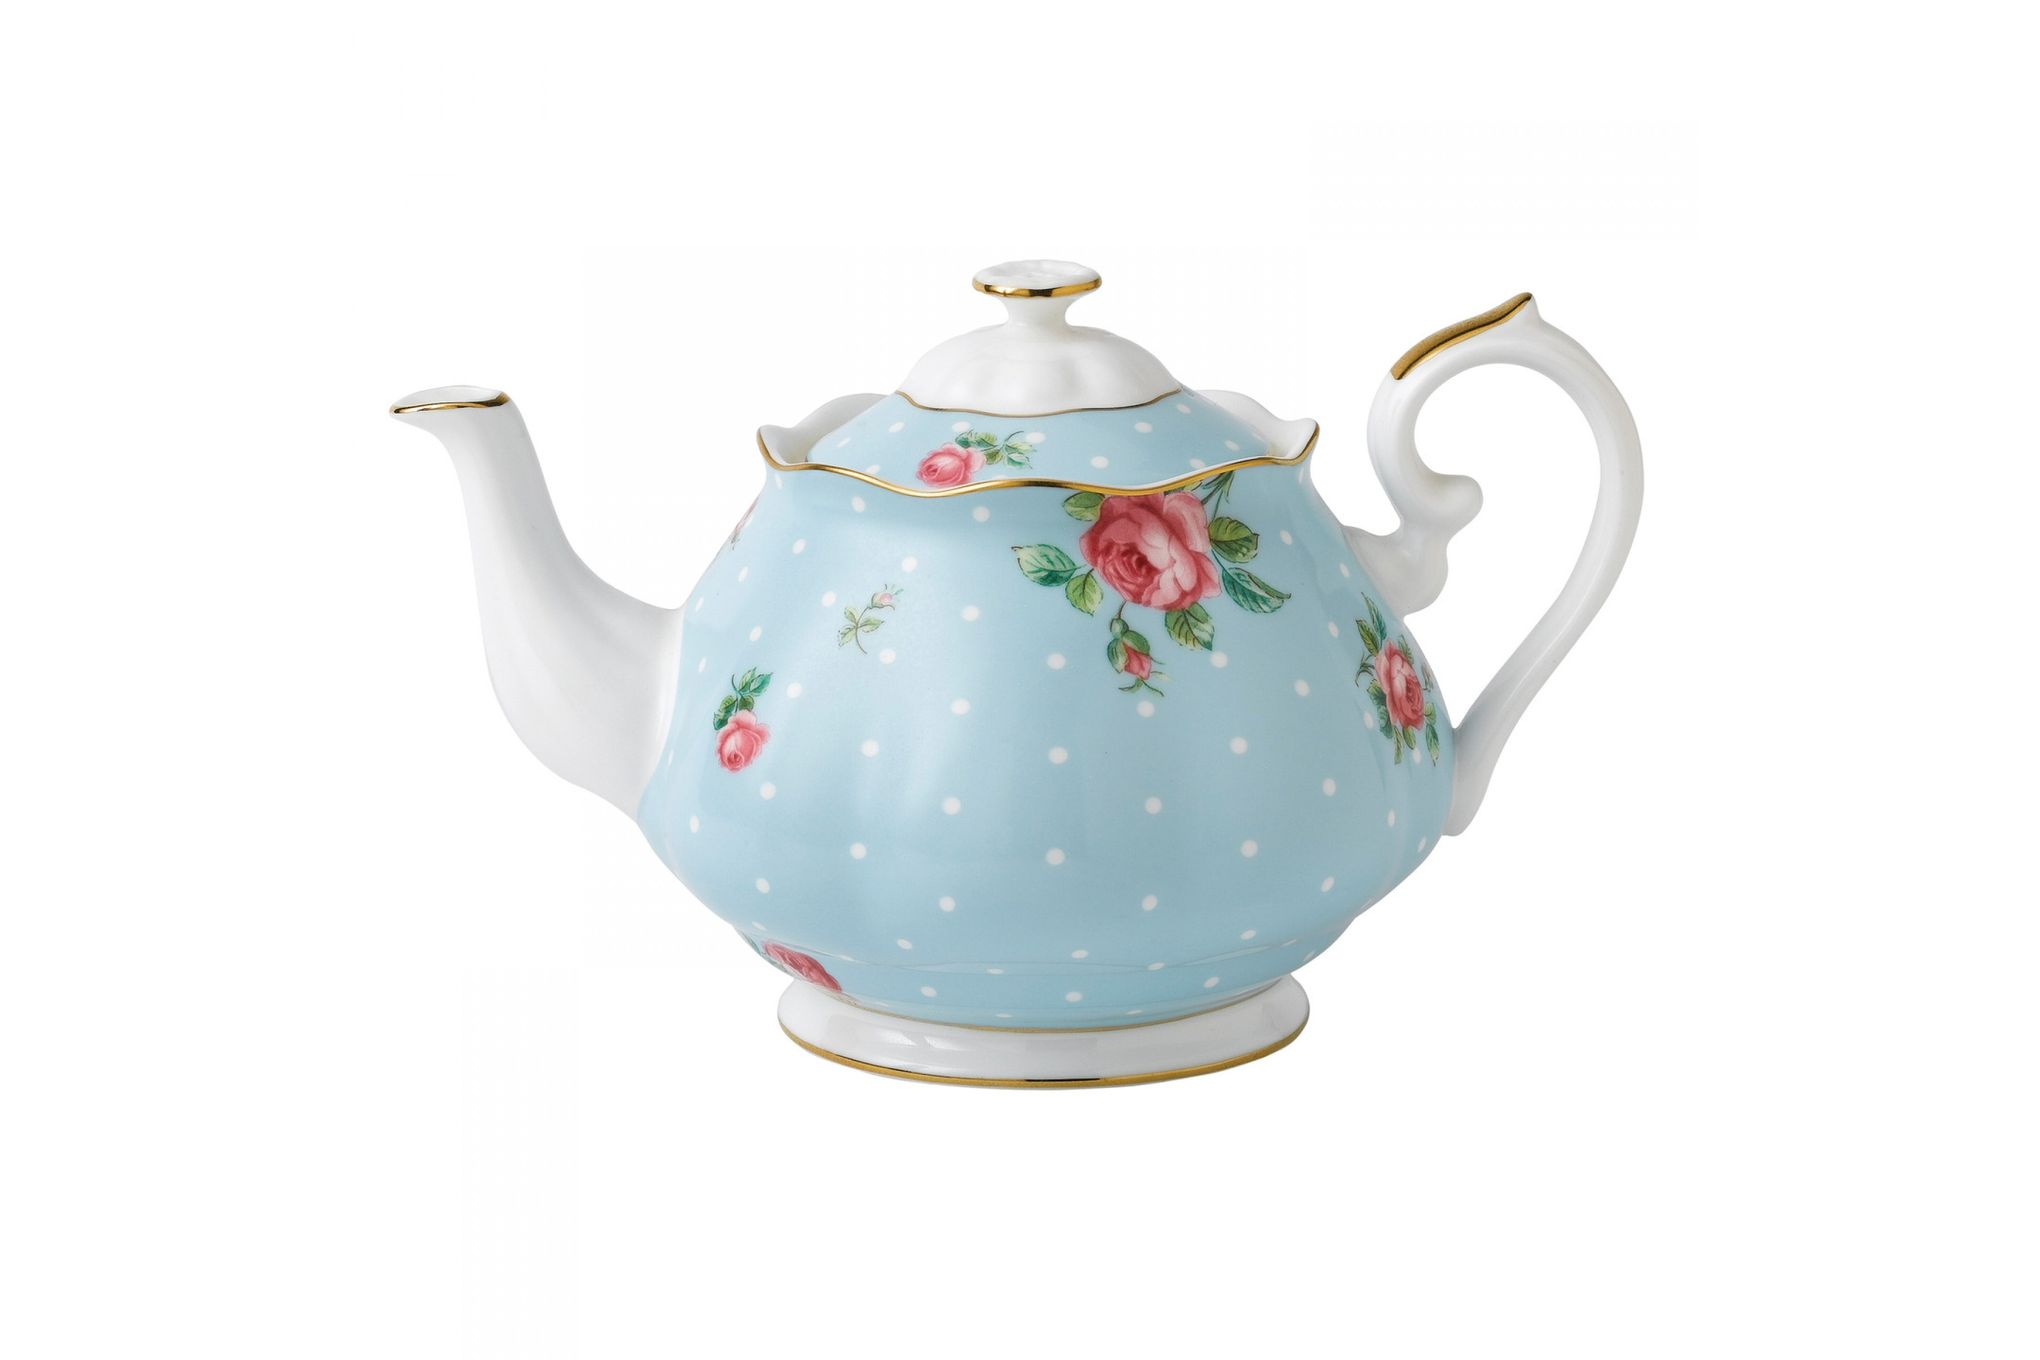 Royal Albert Polka Blue Teapot 1.25l thumb 1